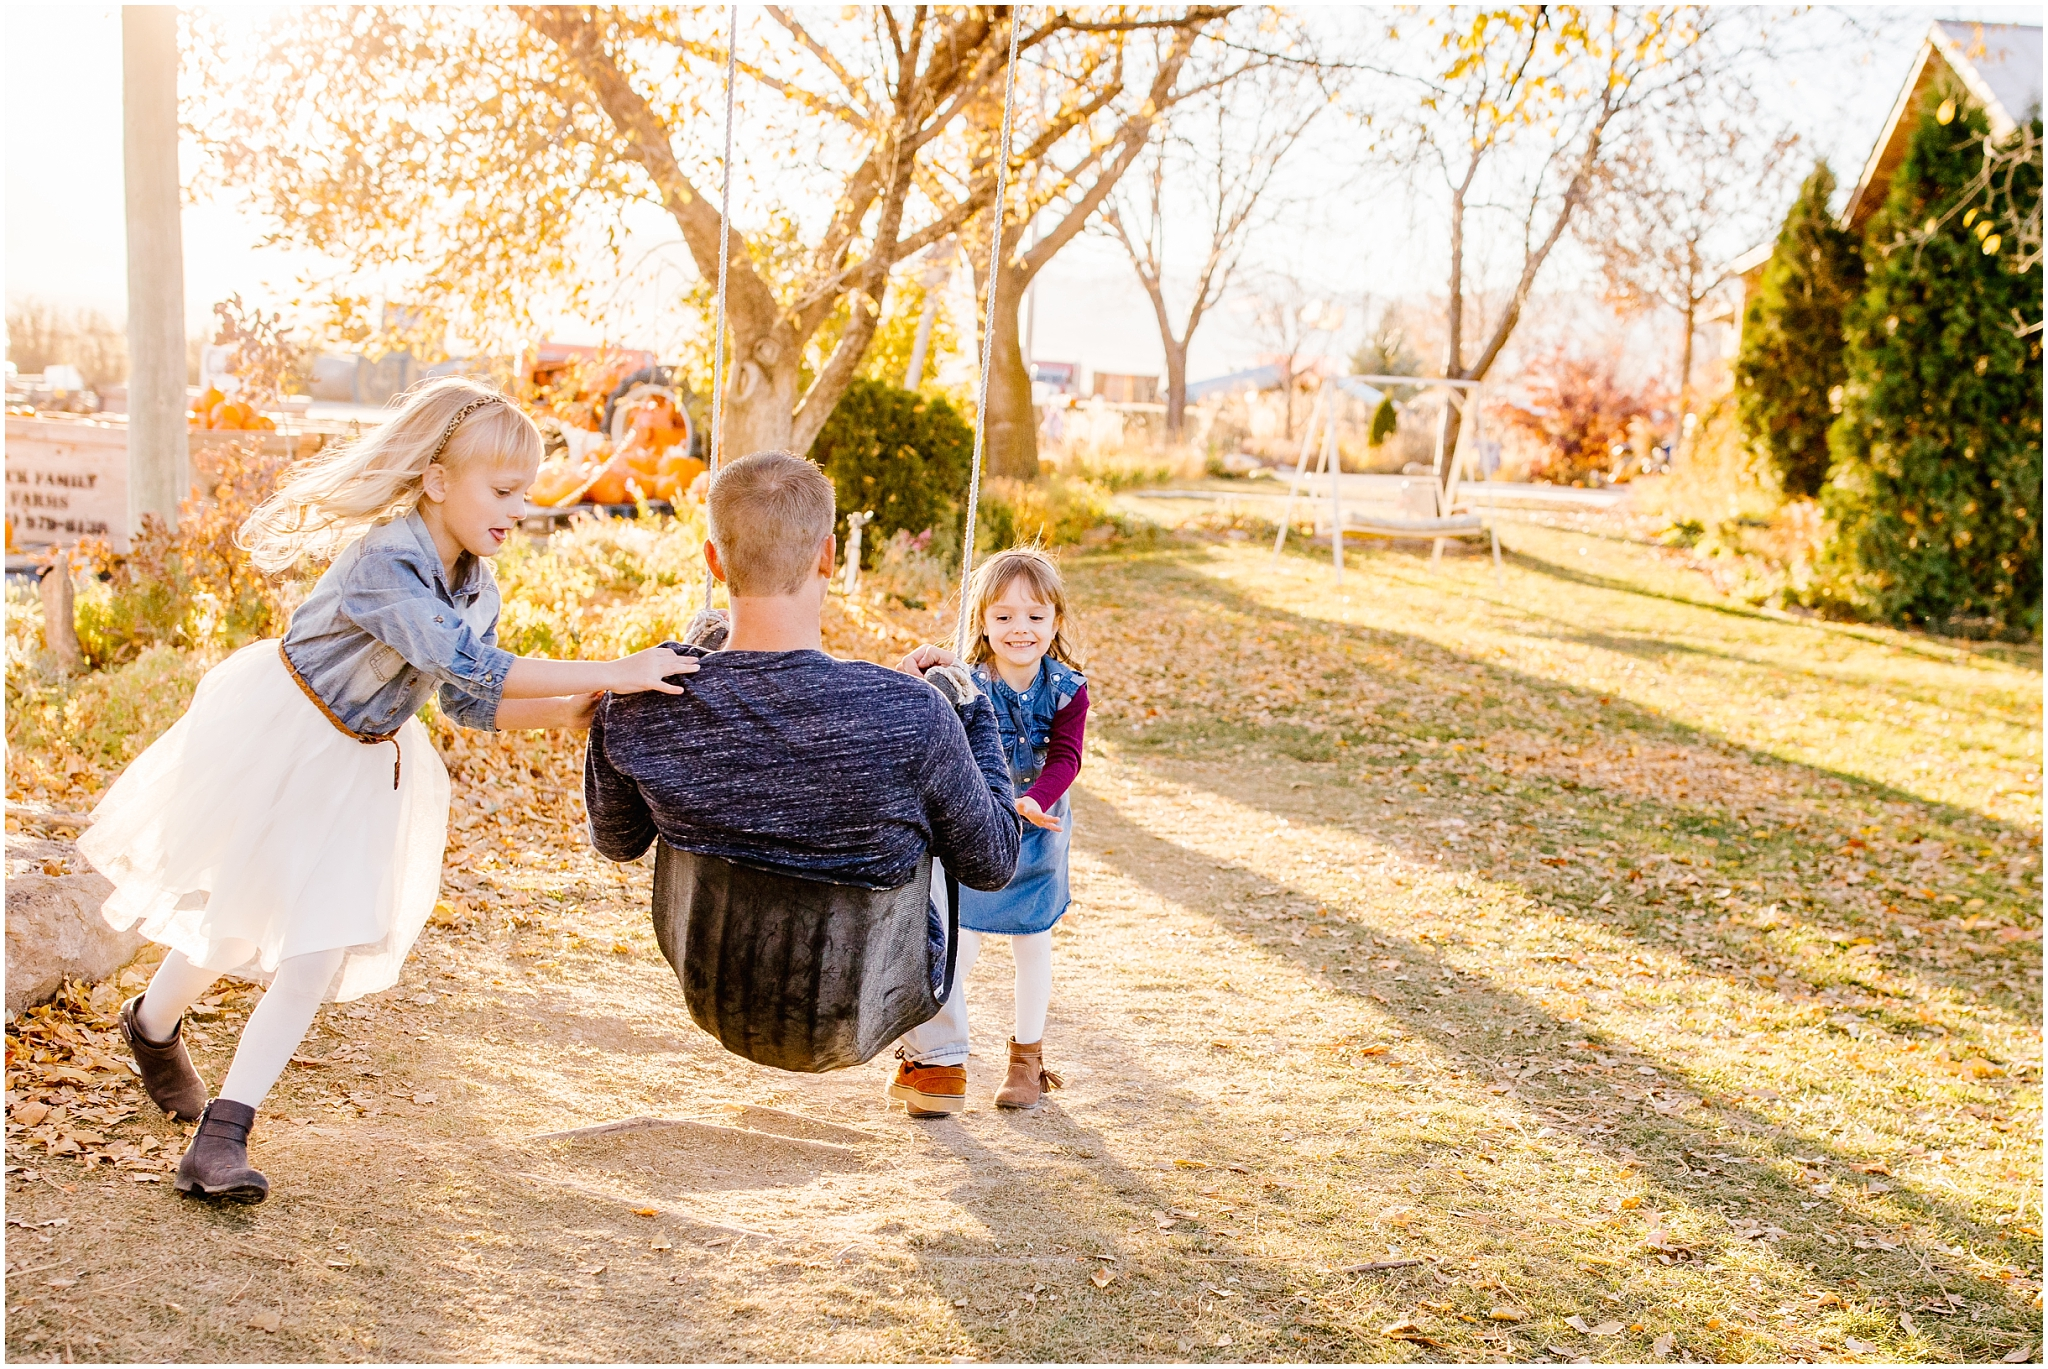 Lizzie-B-Imagery-Utah-Wedding-Photographer-Thanksgiving-Point-Payson-Temple_0101.jpg